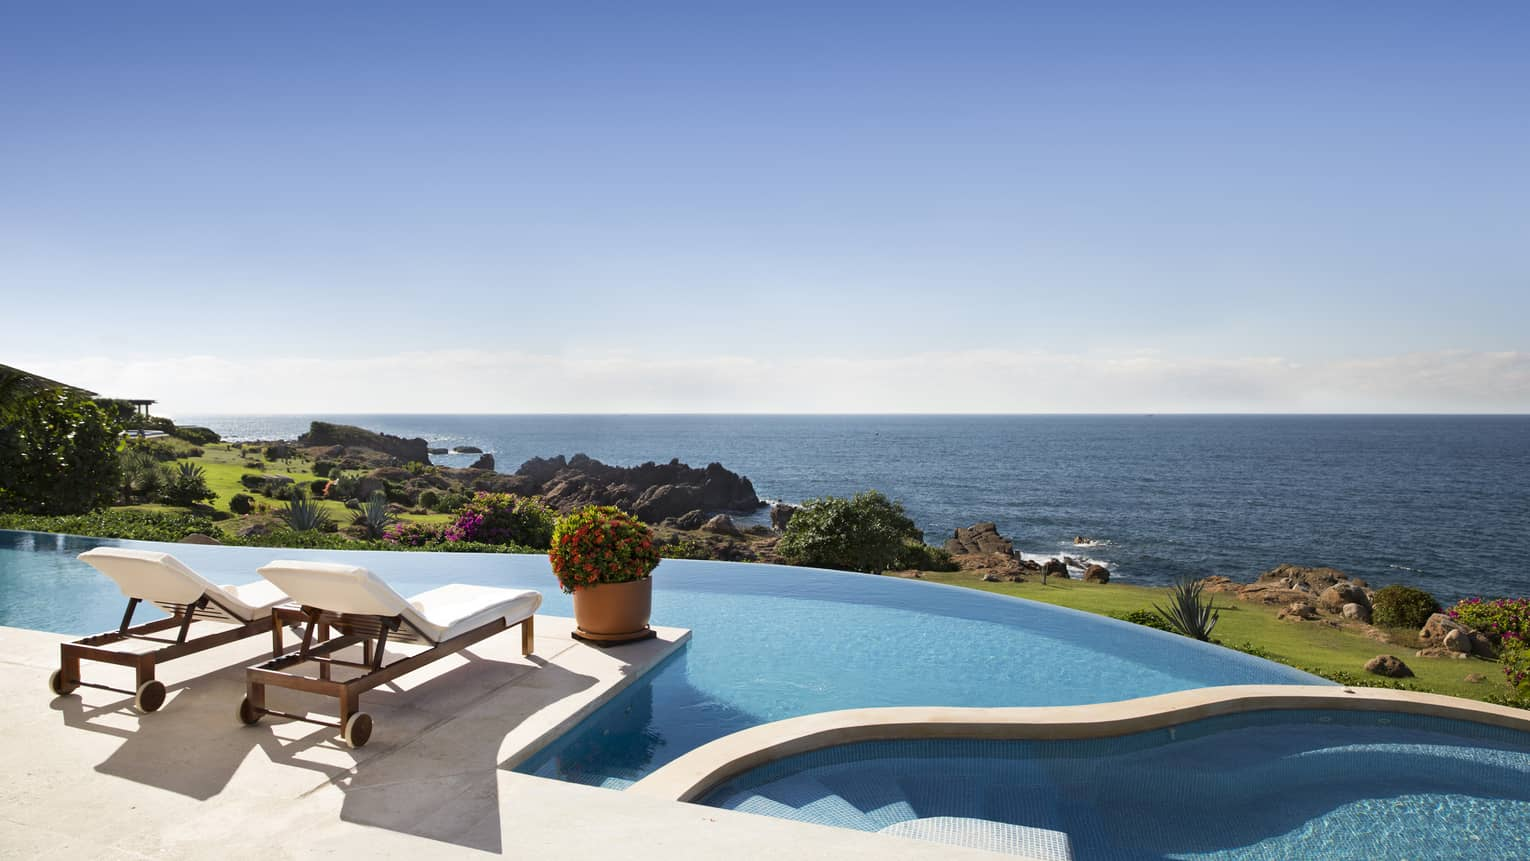 Terrace with two lounge chairs and large infinity pool, overlooking the sea